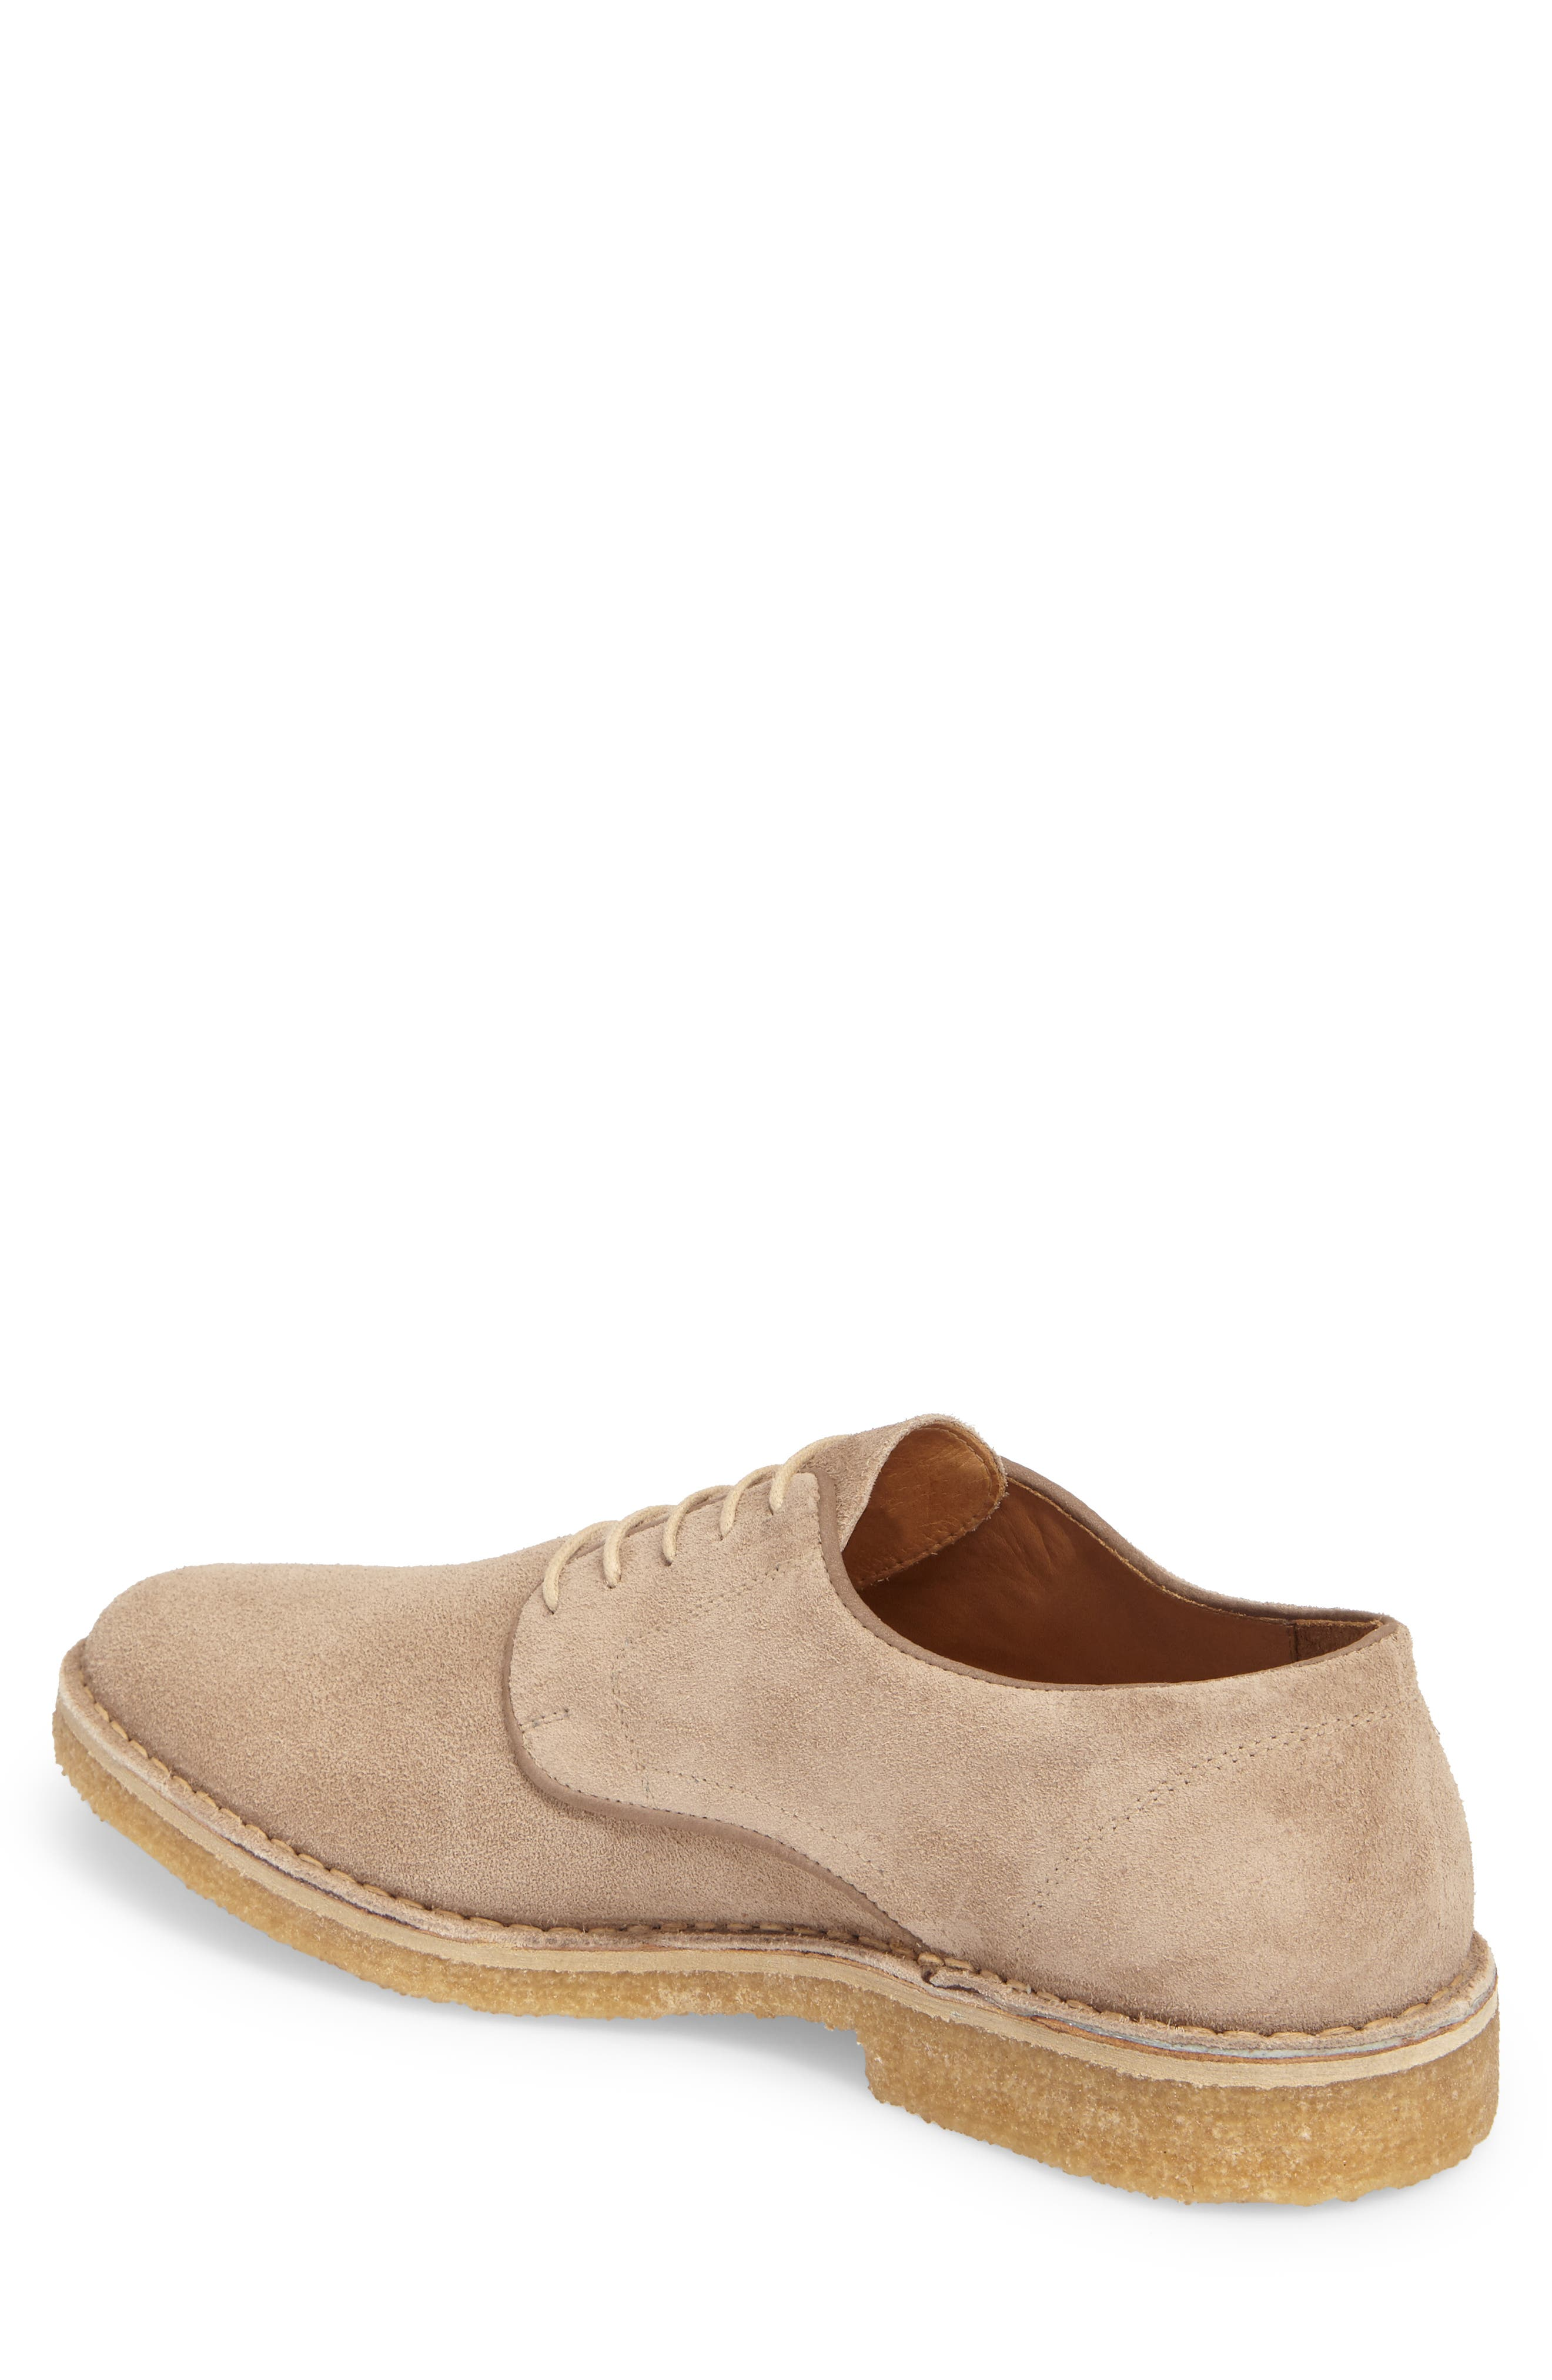 Crescent Buck Shoe,                             Alternate thumbnail 2, color,                             TAN SUEDE